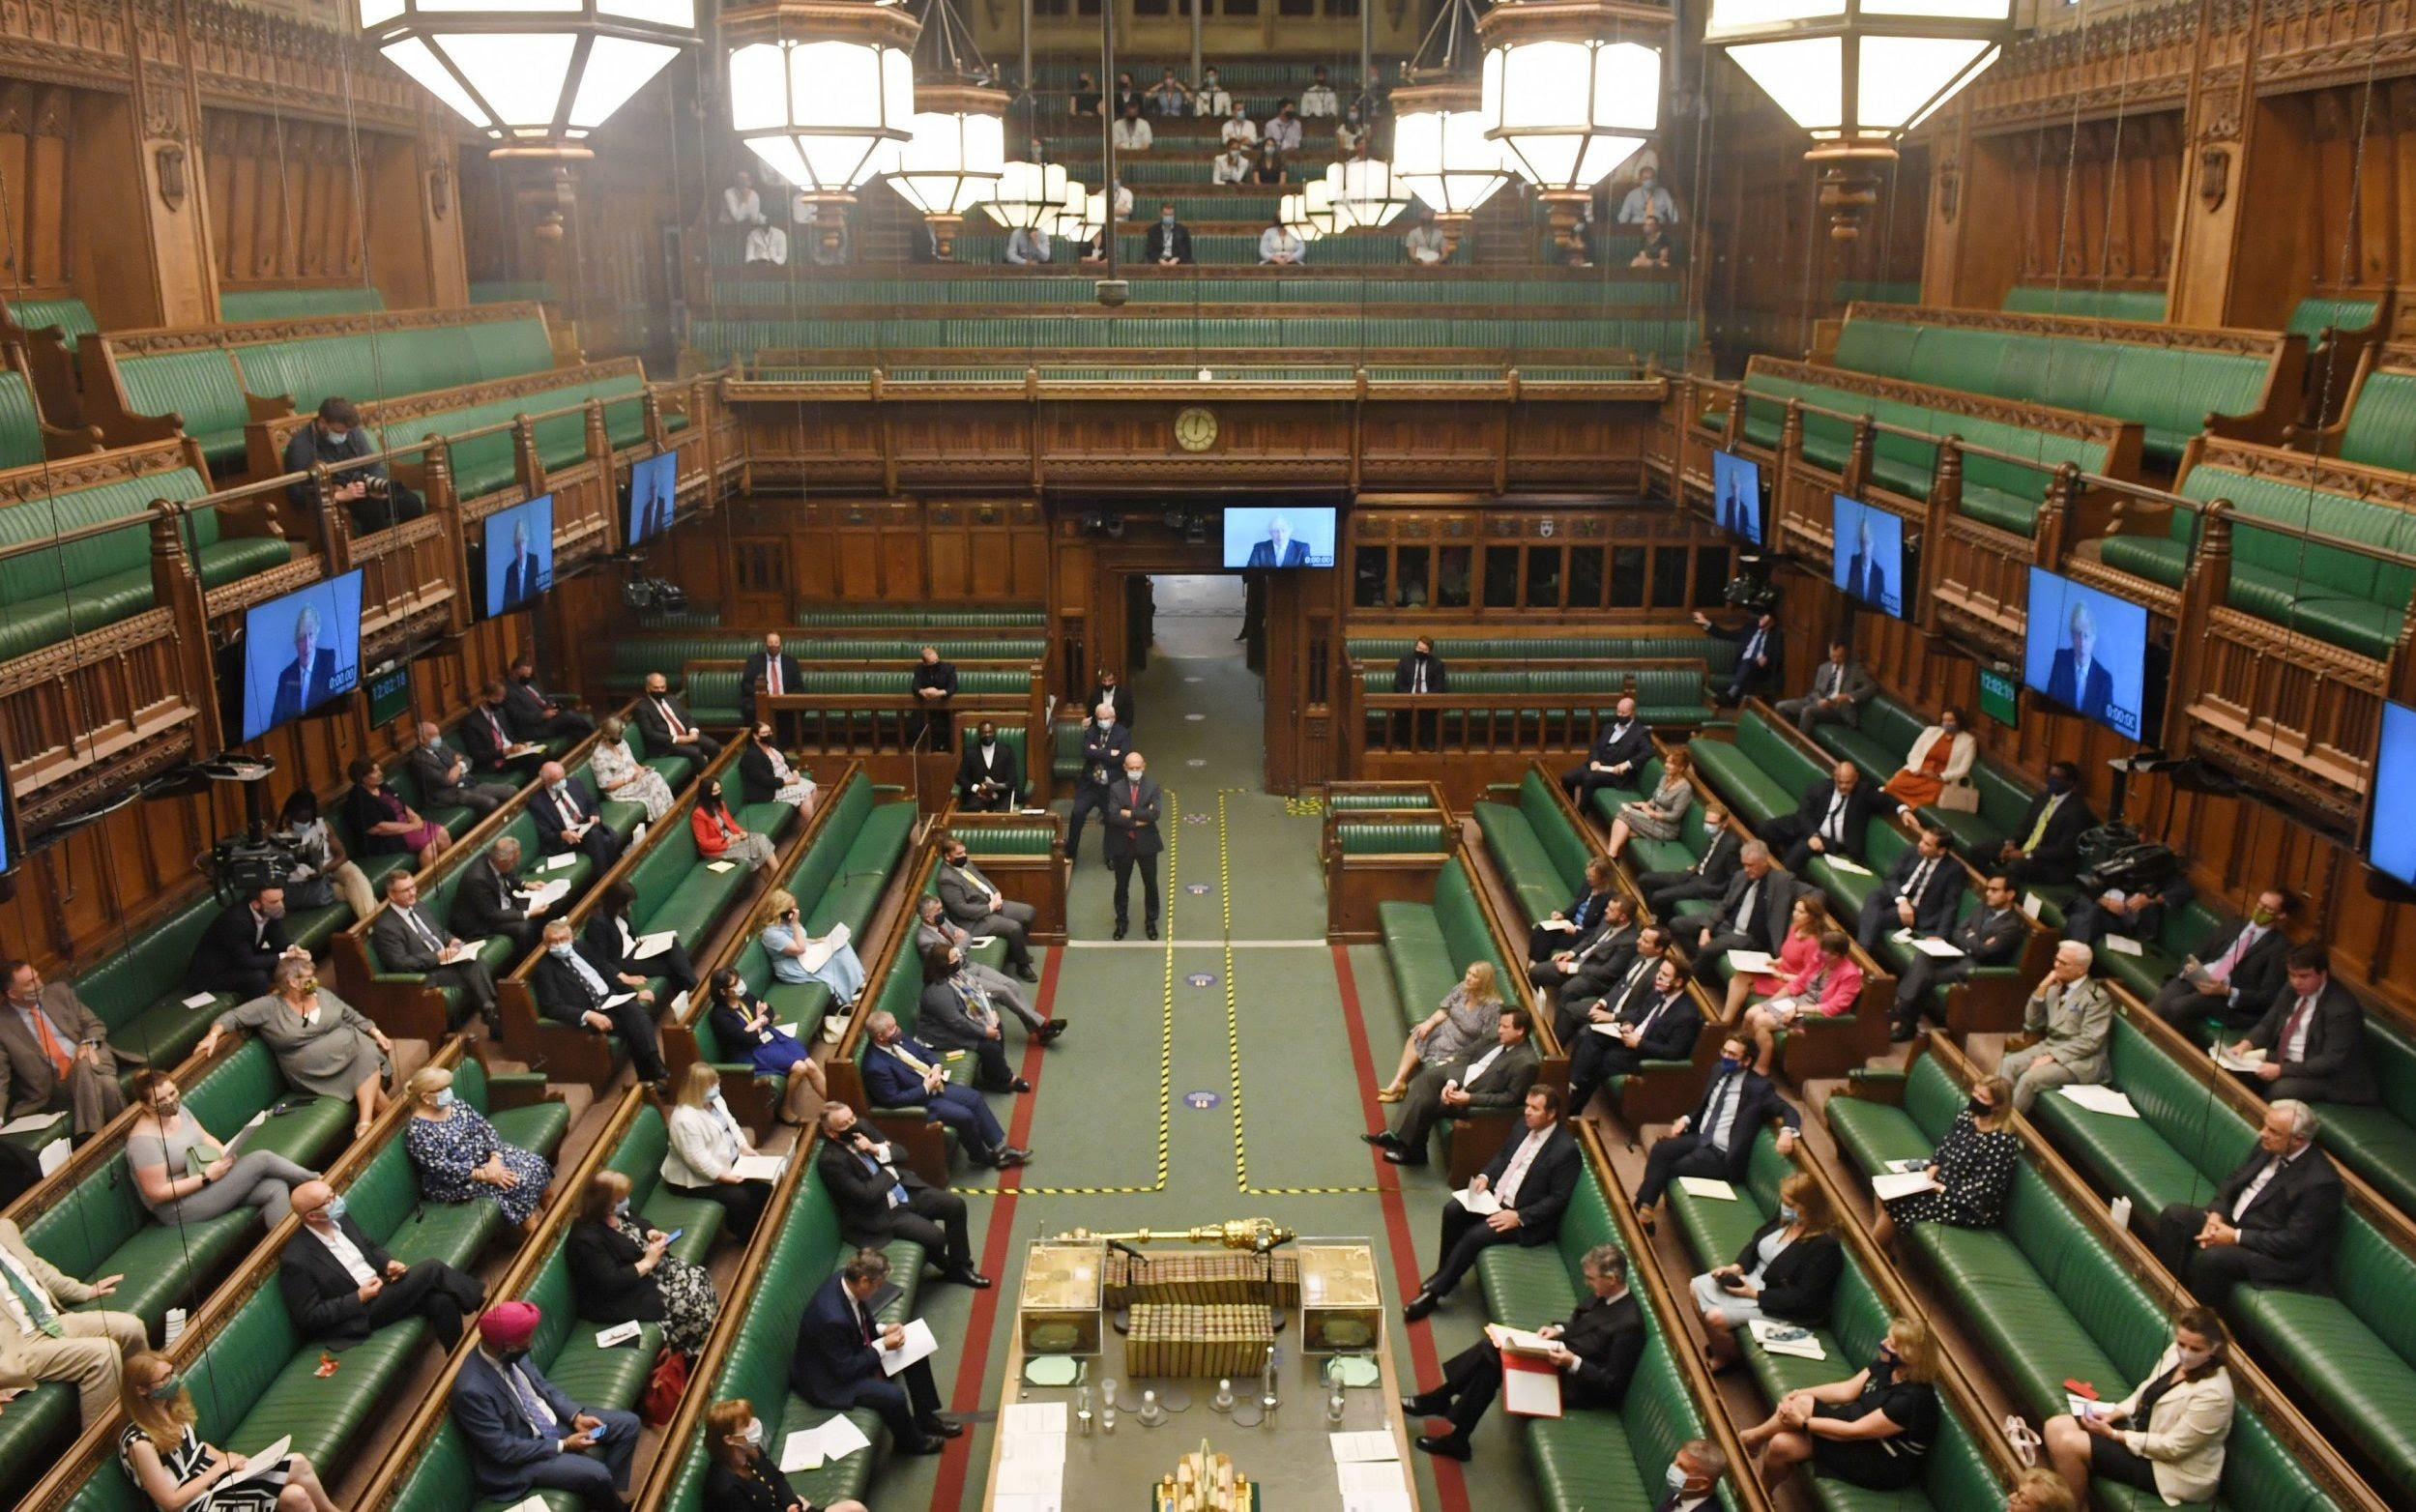 MPs' pay rises could outstrip public sector under watchdog's plans